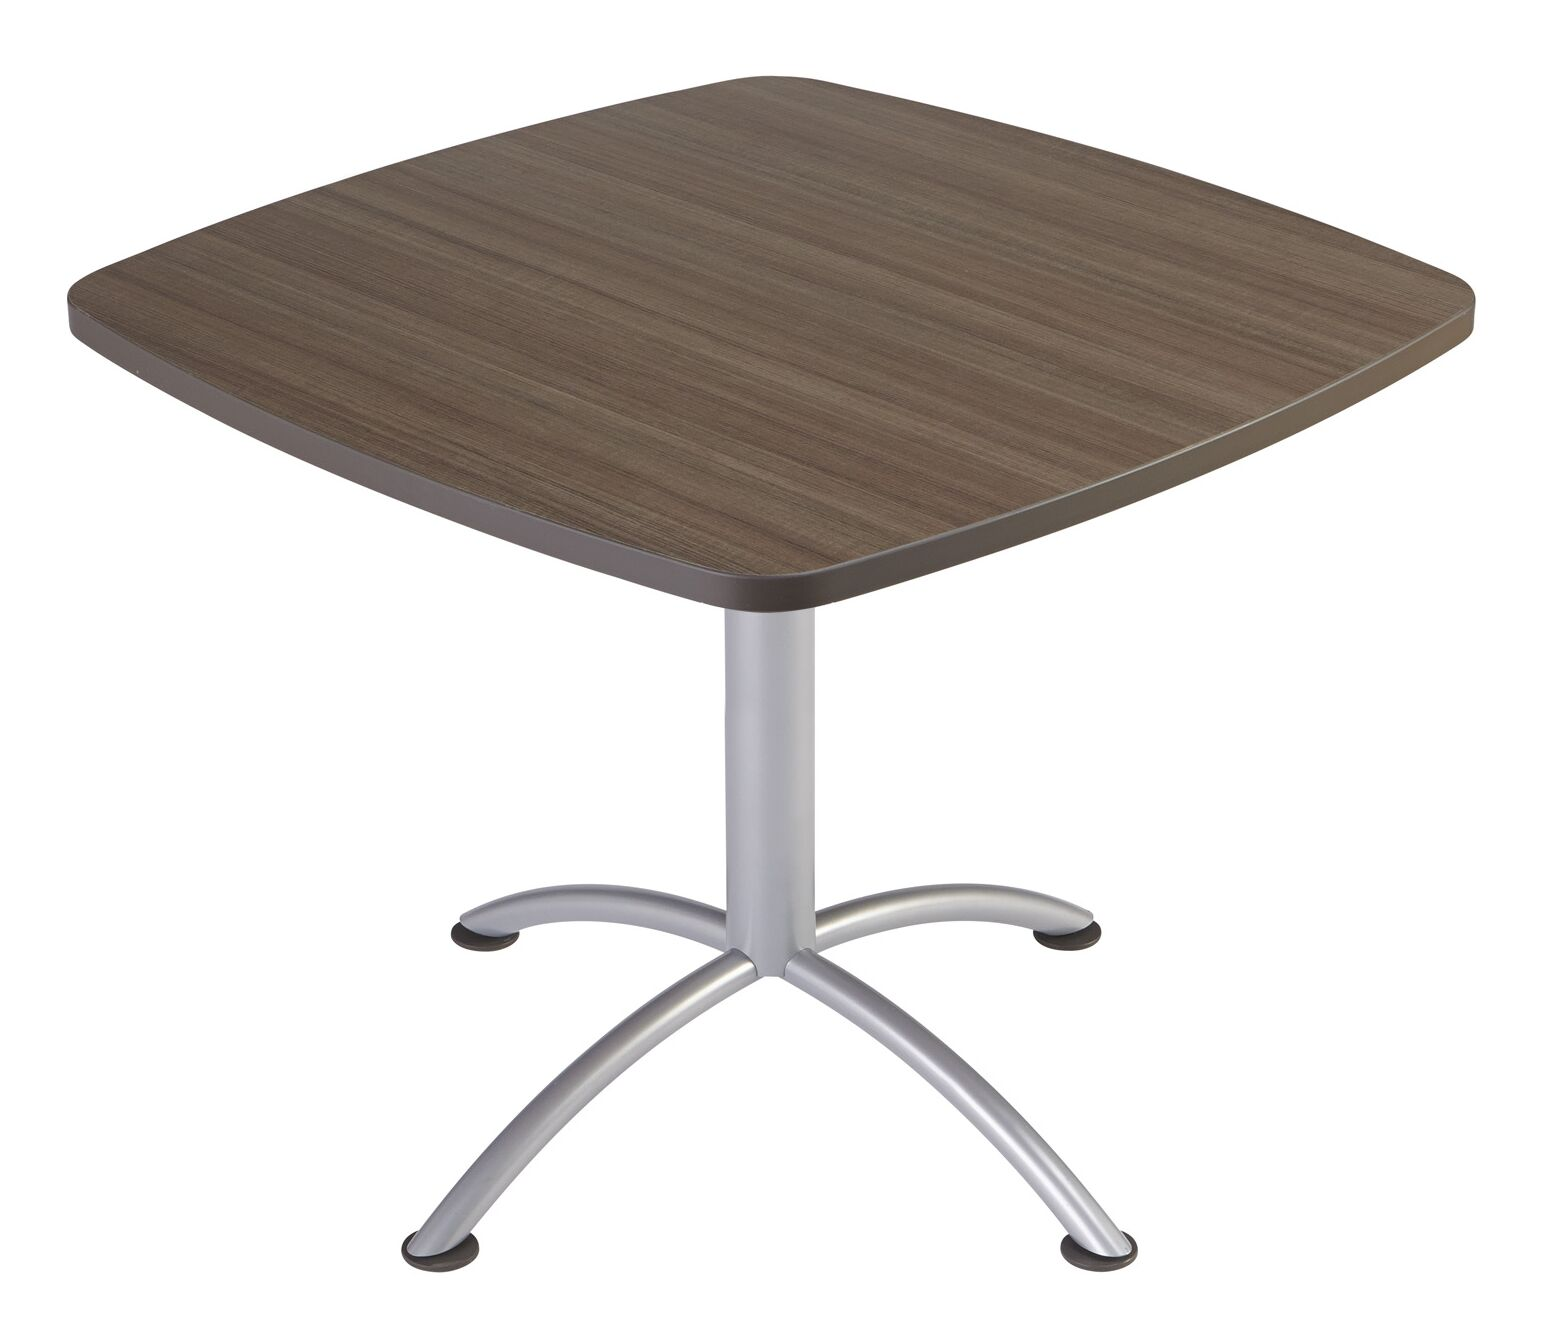 iLand Square Conference Table Size: 29